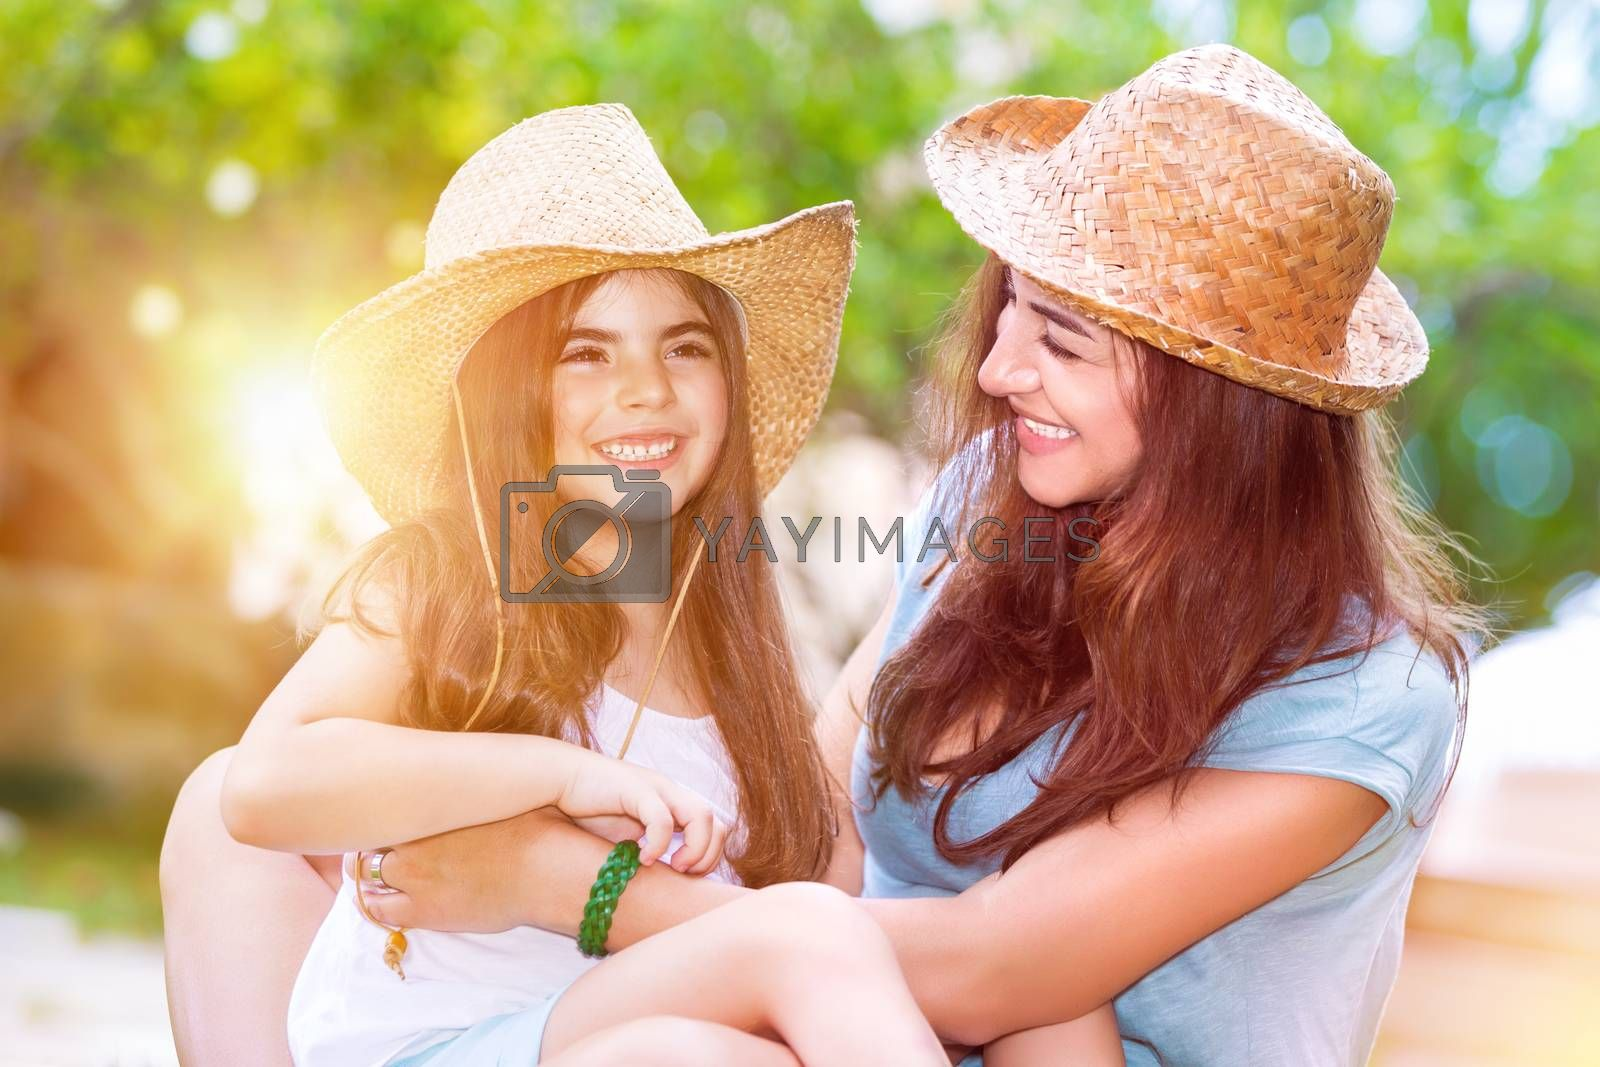 Portrait of a joyful young mother with a cute cheerful daughter wearing same straw hats and playing outdoors, laughing and having fun, portrait of a happy family enjoying life